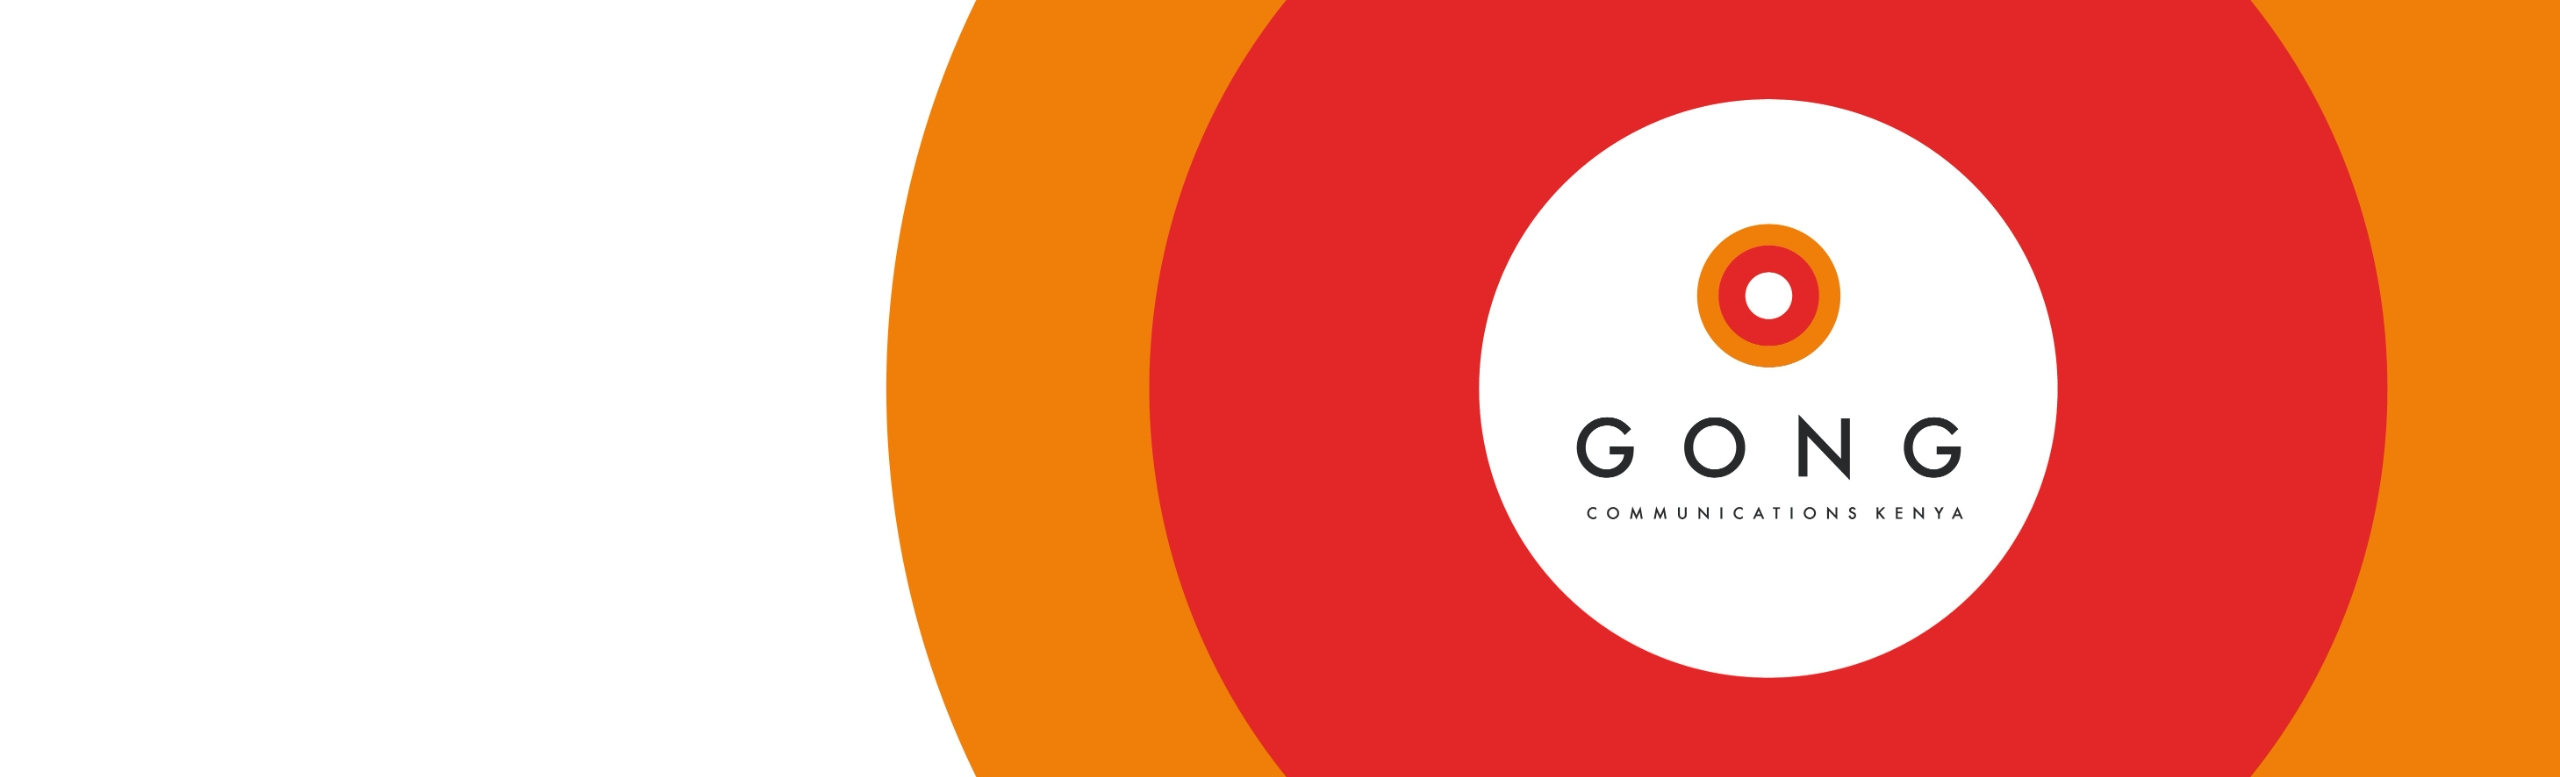 Gong Communications Kenya (@gongkenya) Cover Image